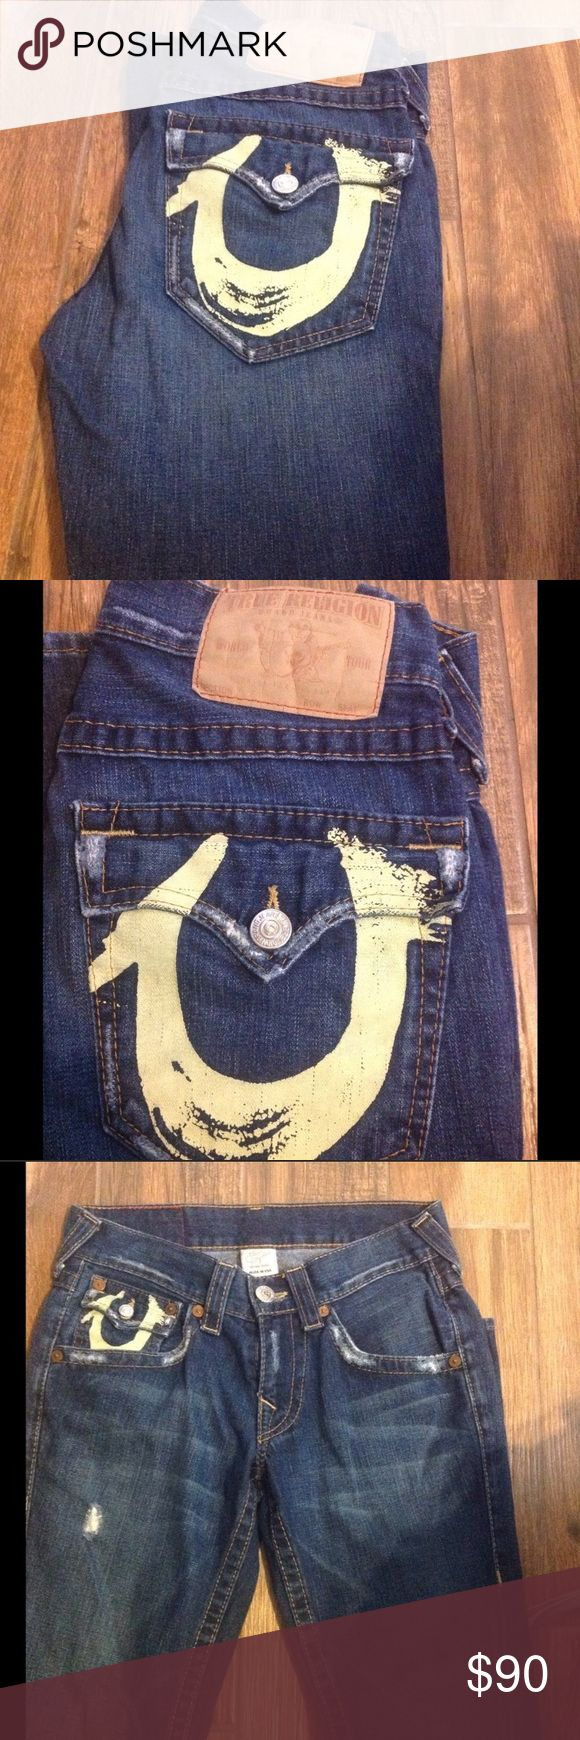 🌟True Religion Jeans🌟 Re-Posh. Unfortunately they do not fit me 😫. Love love these and the print on the back pocket. They are a small 29. I will provide measurements tomorrow. But I'd say they are closer to a 27. My loss your gain. Take advantage of my 15% bundle discount of two or more items.  Thanks for looking! Happy Poshing! True Religion Jeans Flare & Wide Leg